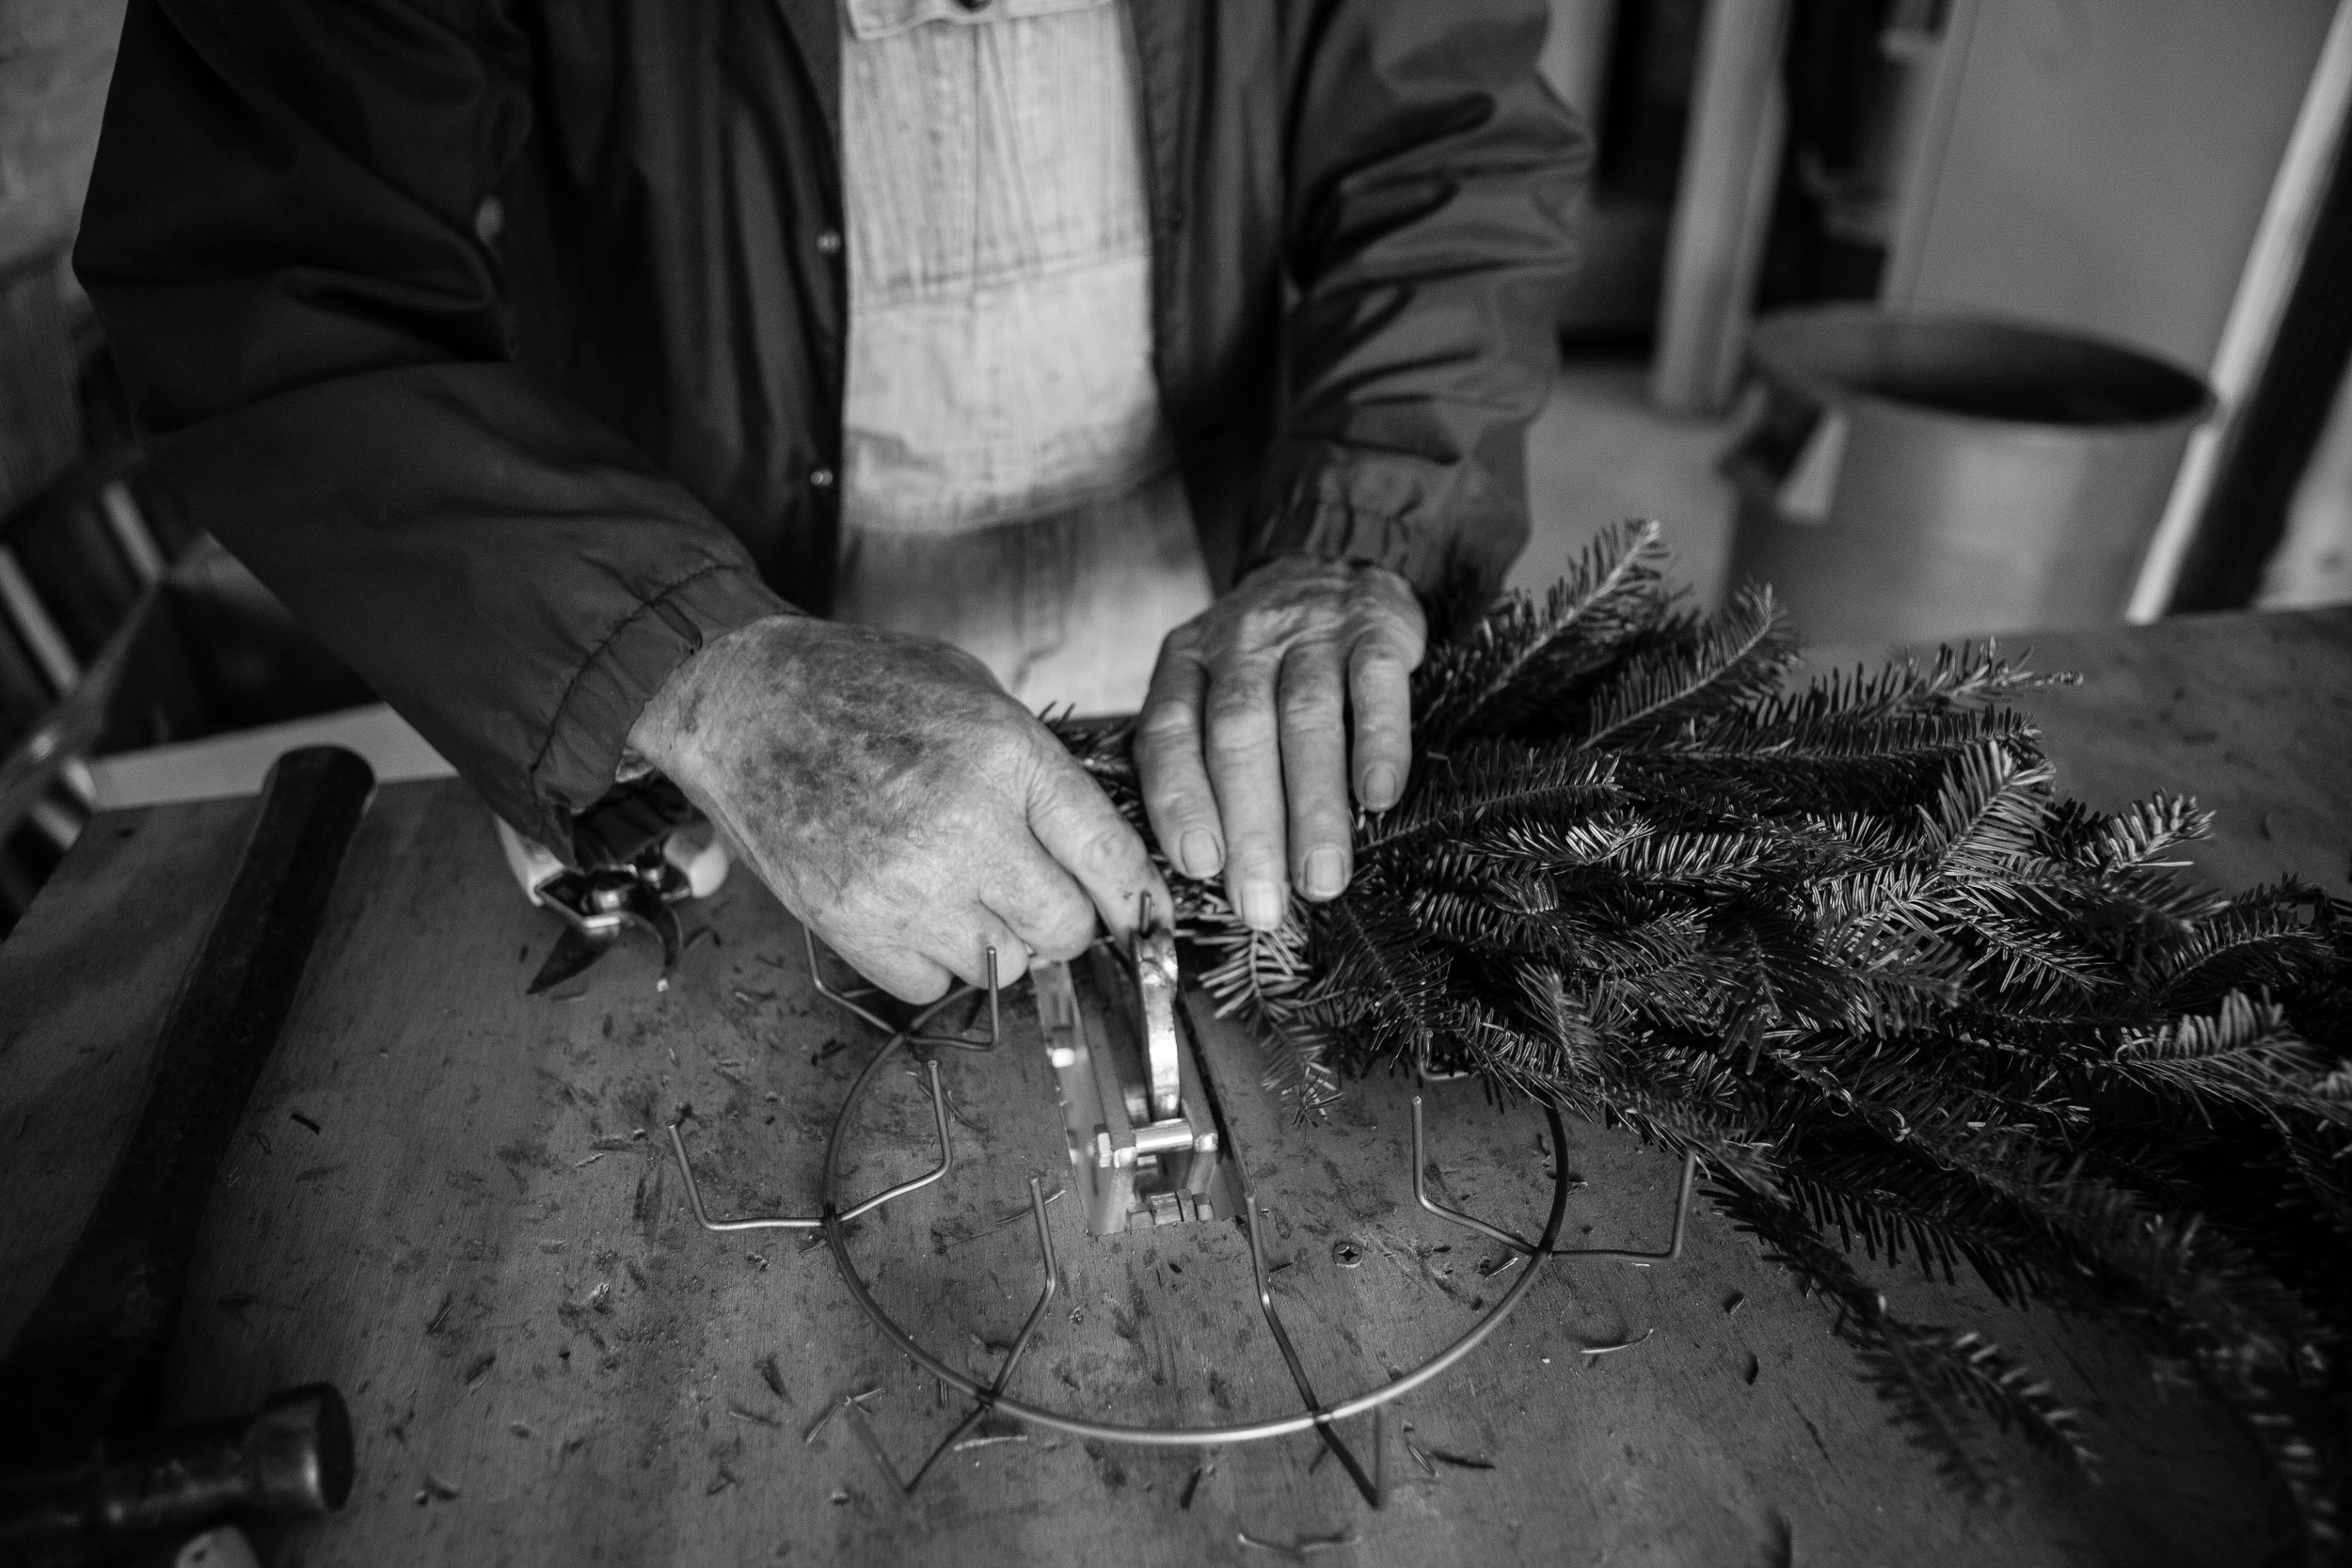 Man making Christmas wreaths in Lenoir, North Carolina.